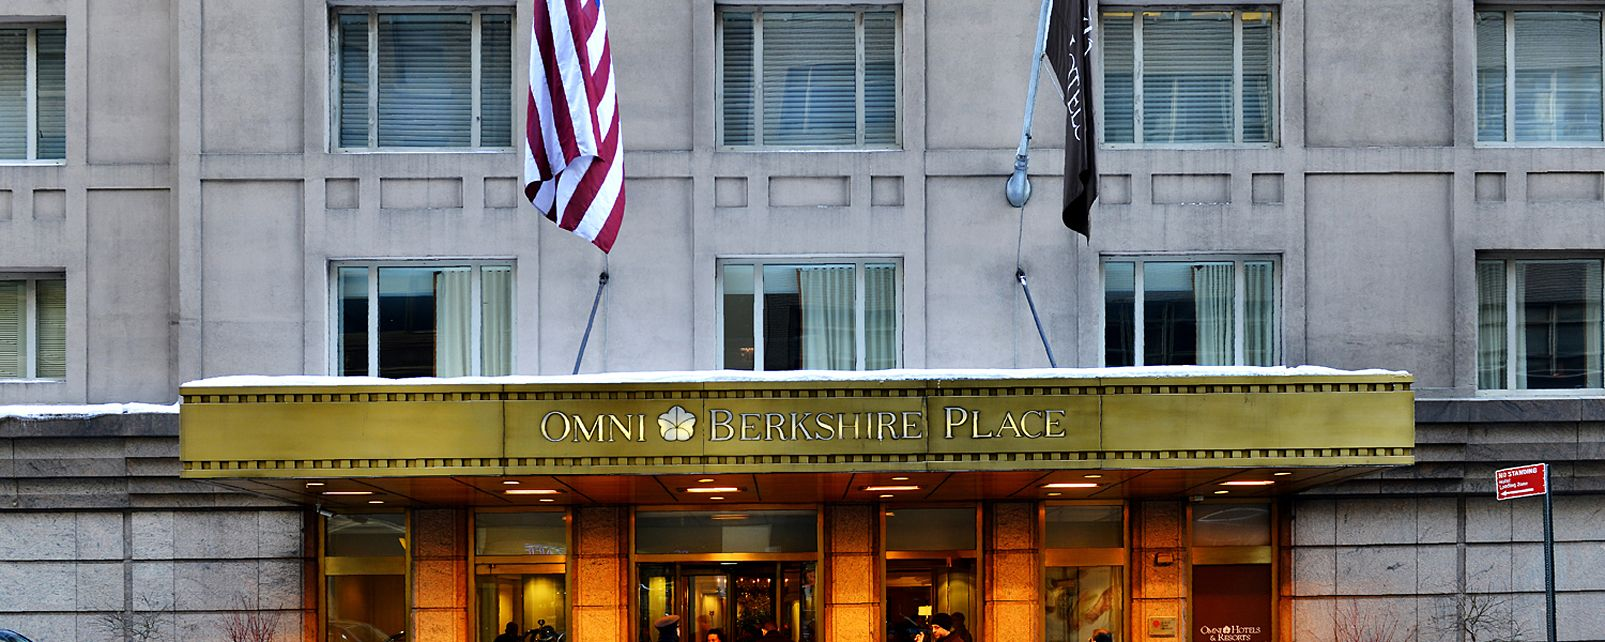 Hotel Omni Berkshire Place